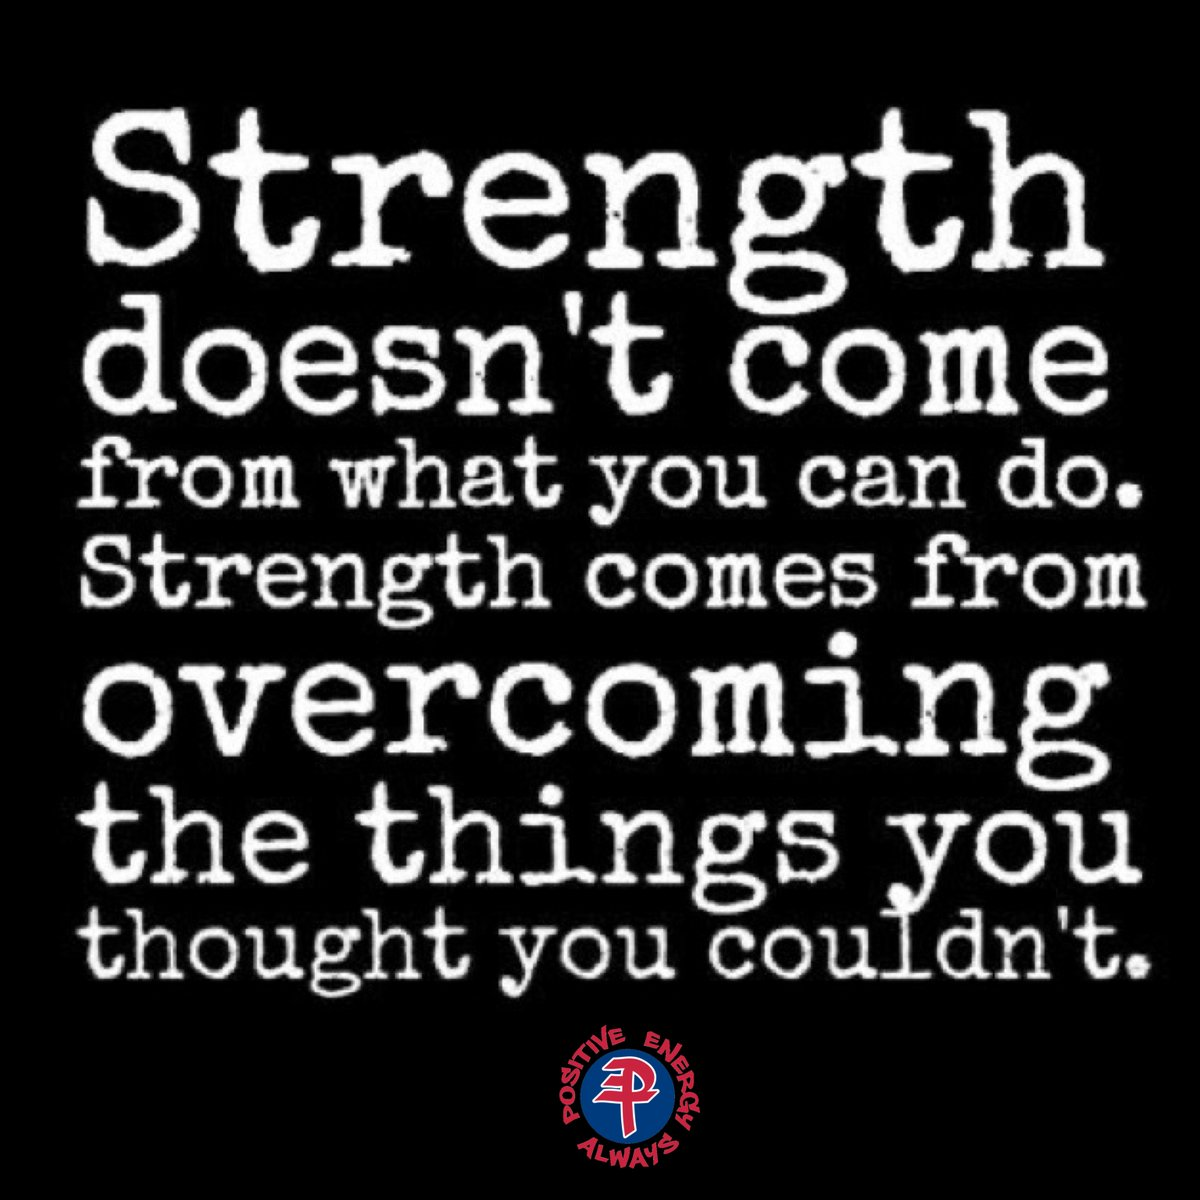 We are all building strength right now!! #strength #overcome #yougotthis #stayfocused #hanginthere #pealways #stamptheworldpic.twitter.com/H9Wau2RRYG